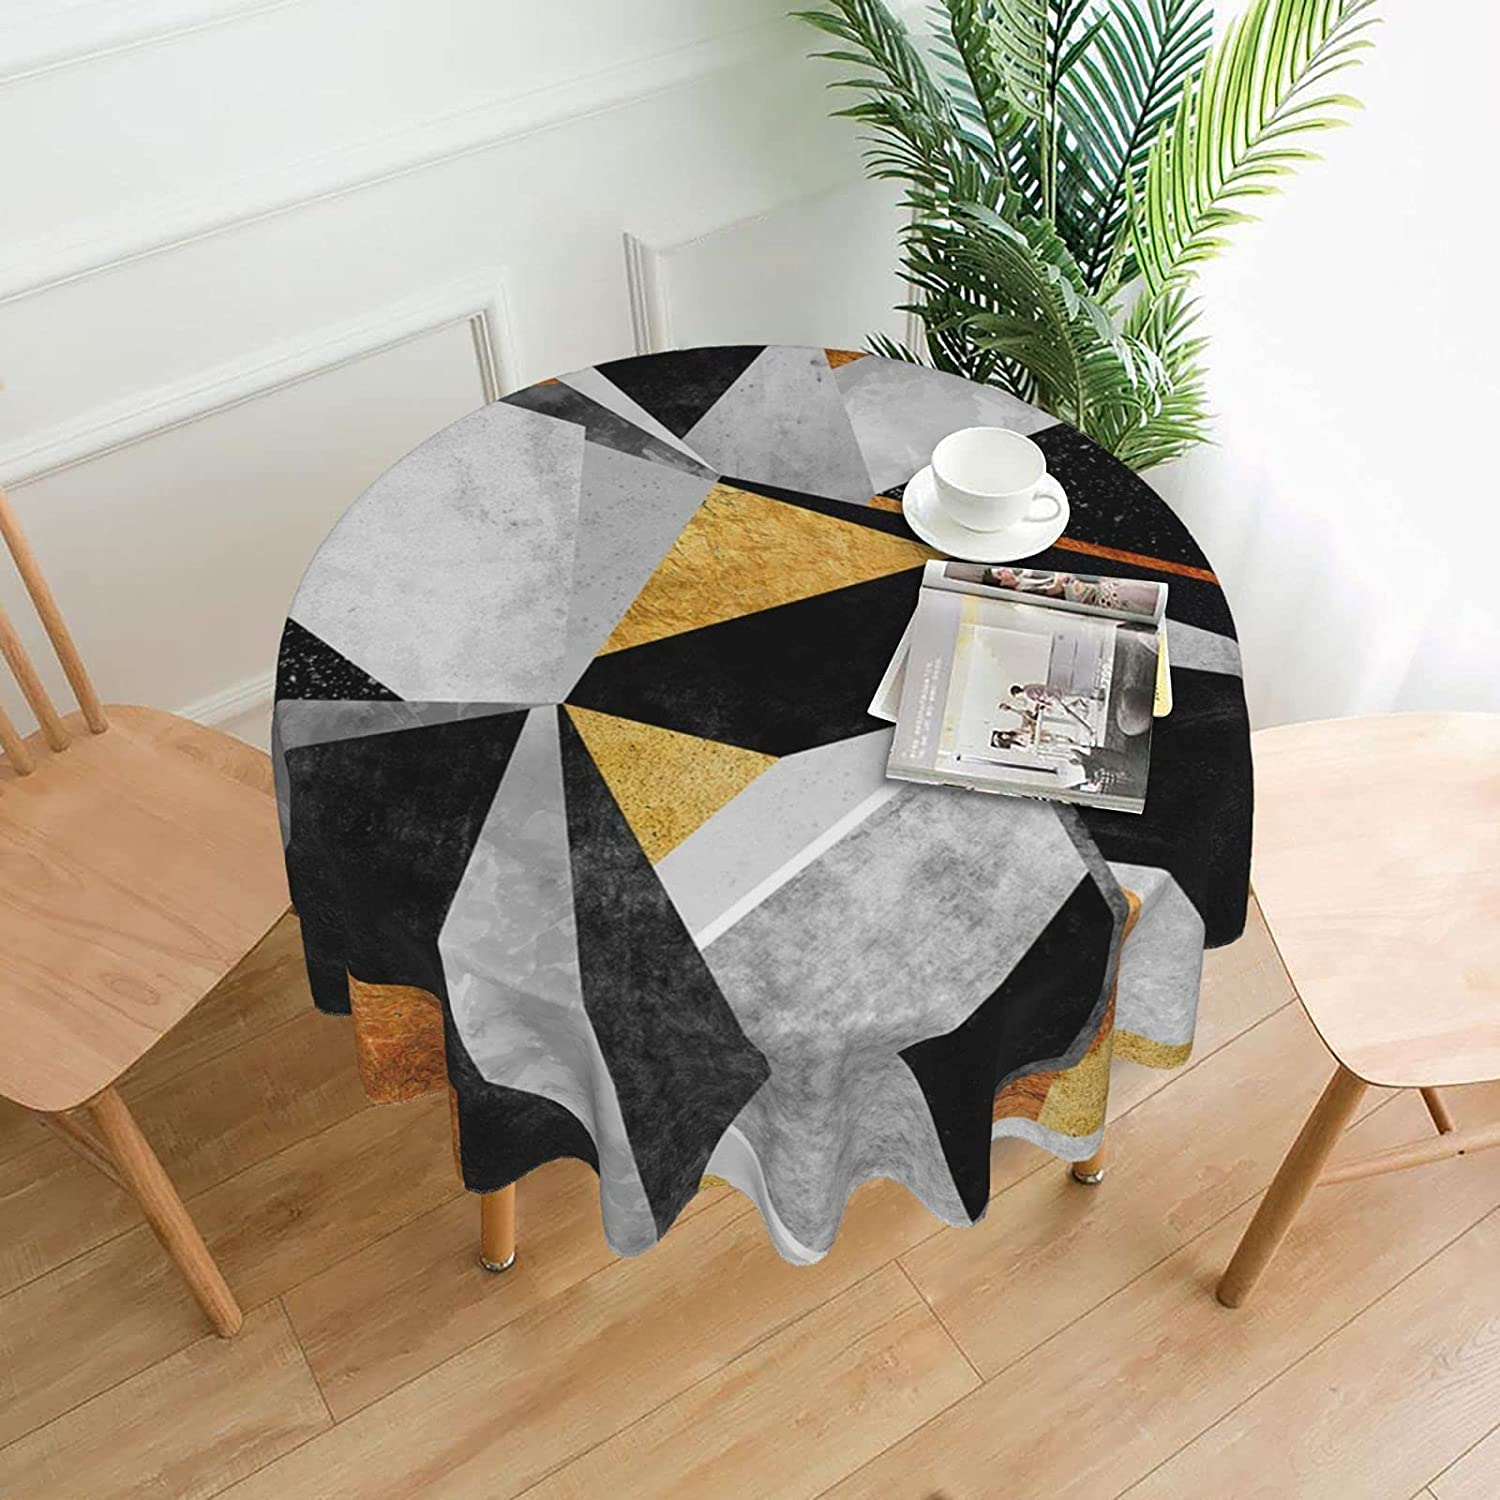 Max 90% OFF Black Marble Round Tablecloth Oil-Proof Max 78% OFF Spill-Proof and W Water